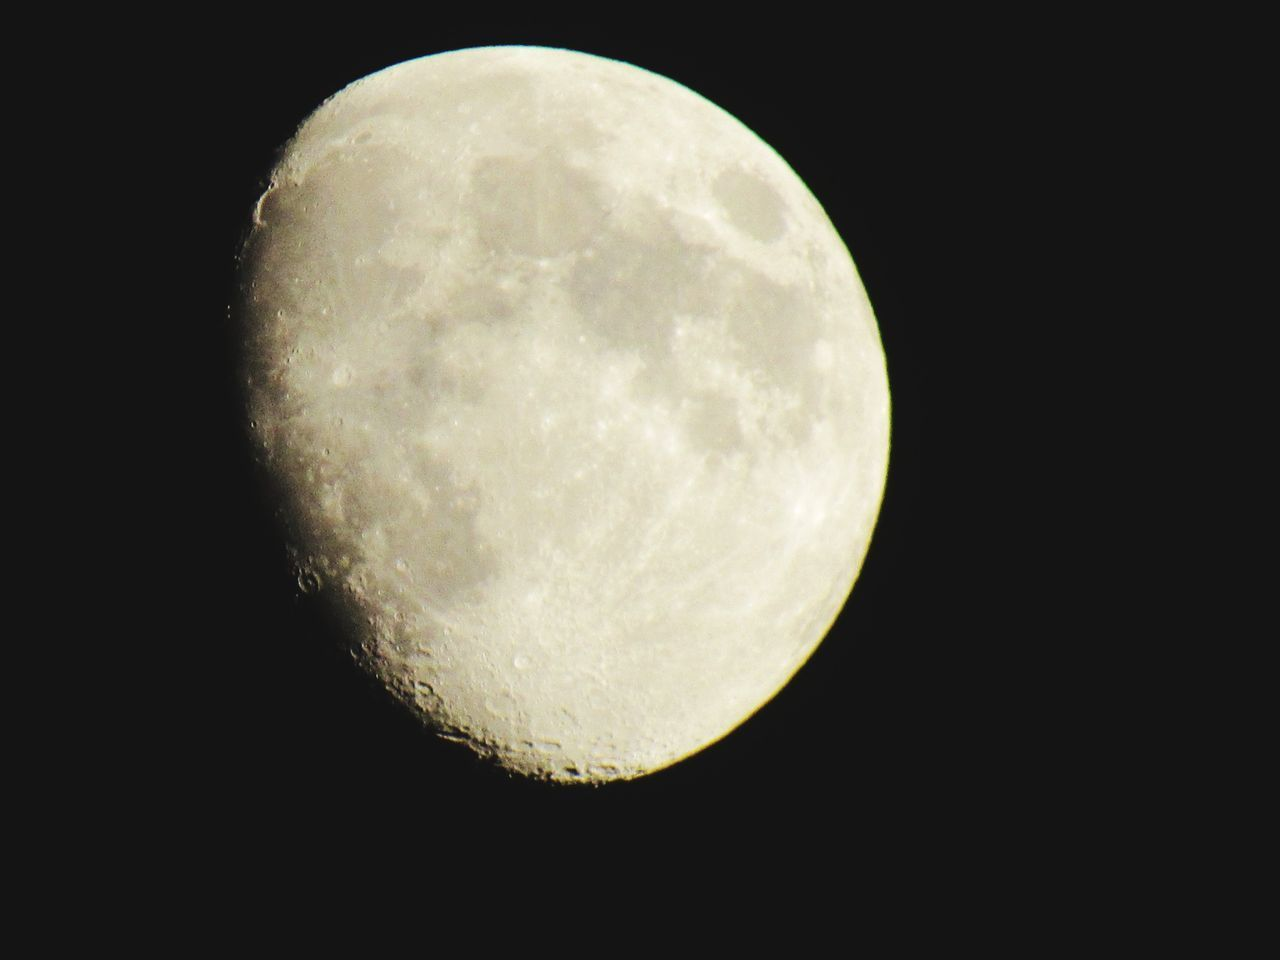 night, moon, moon surface, beauty in nature, astronomy, planetary moon, nature, scenics, tranquility, no people, space exploration, outdoors, close-up, sky, clear sky, space, half moon, satellite view